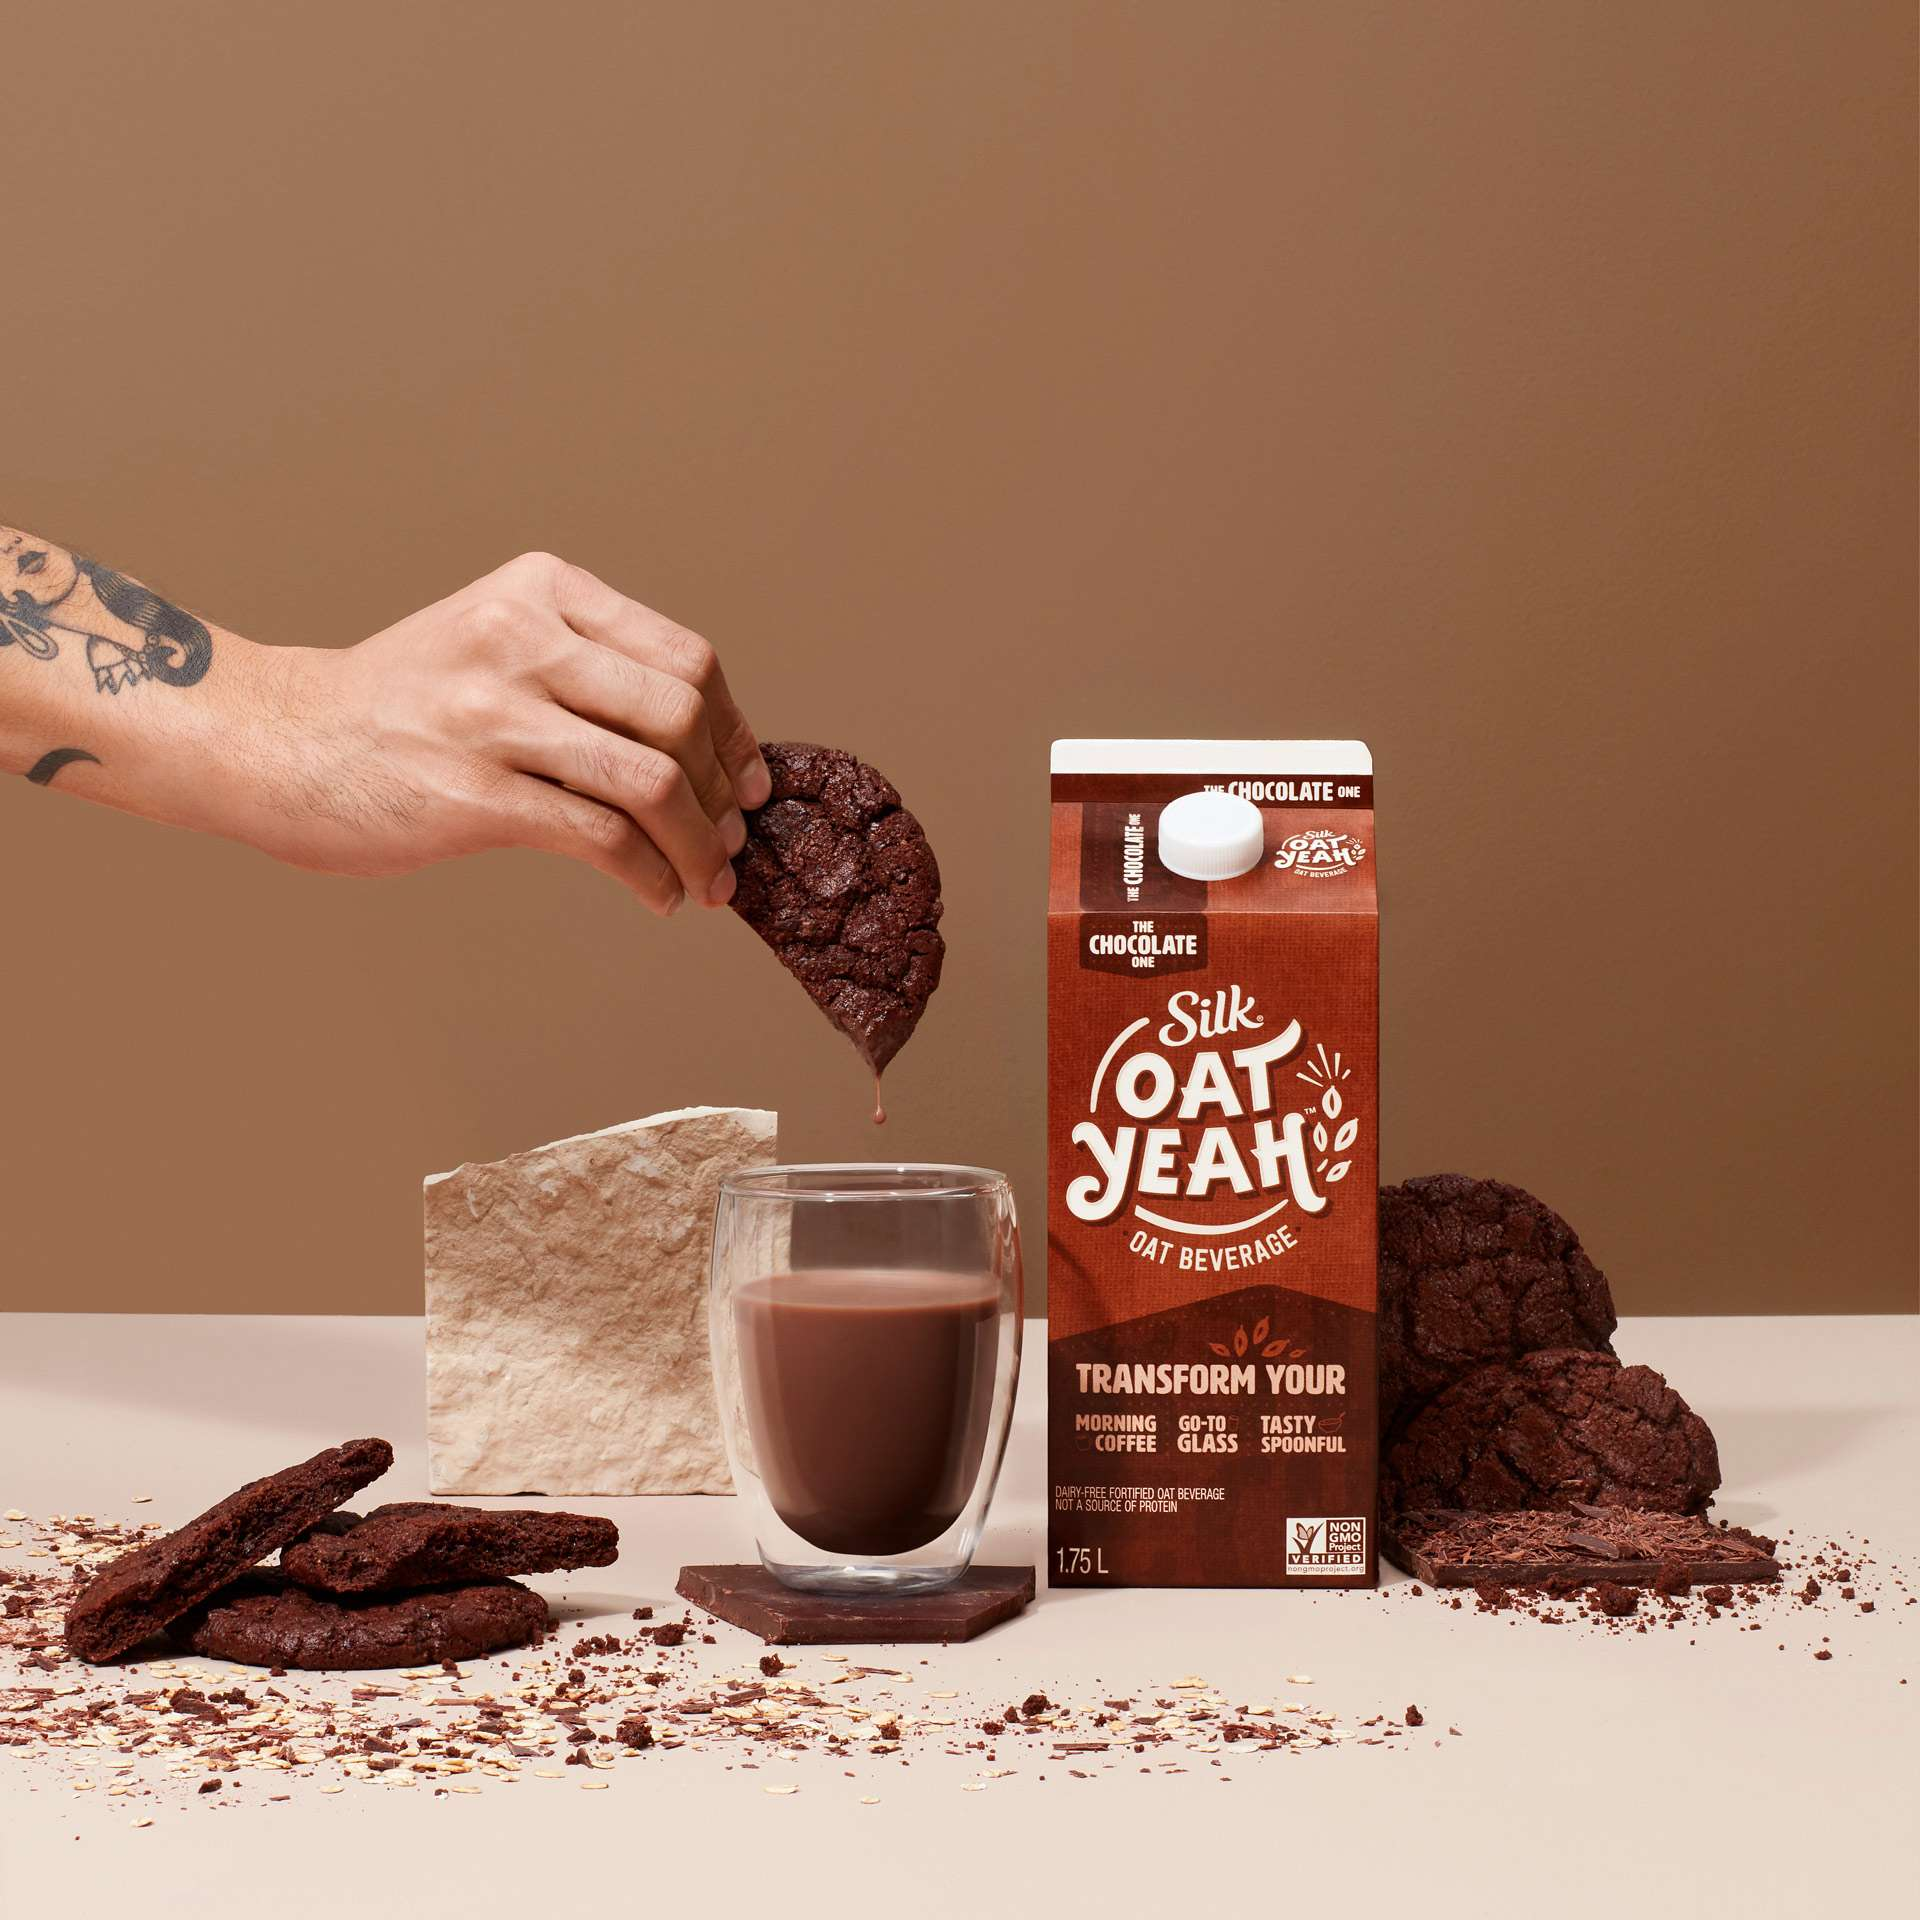 carton of chocolate oat milk glass full in front hand dunking a chocolate cookie in glass by Simon Duhamel for Oat Yeah Silk and Carl agency